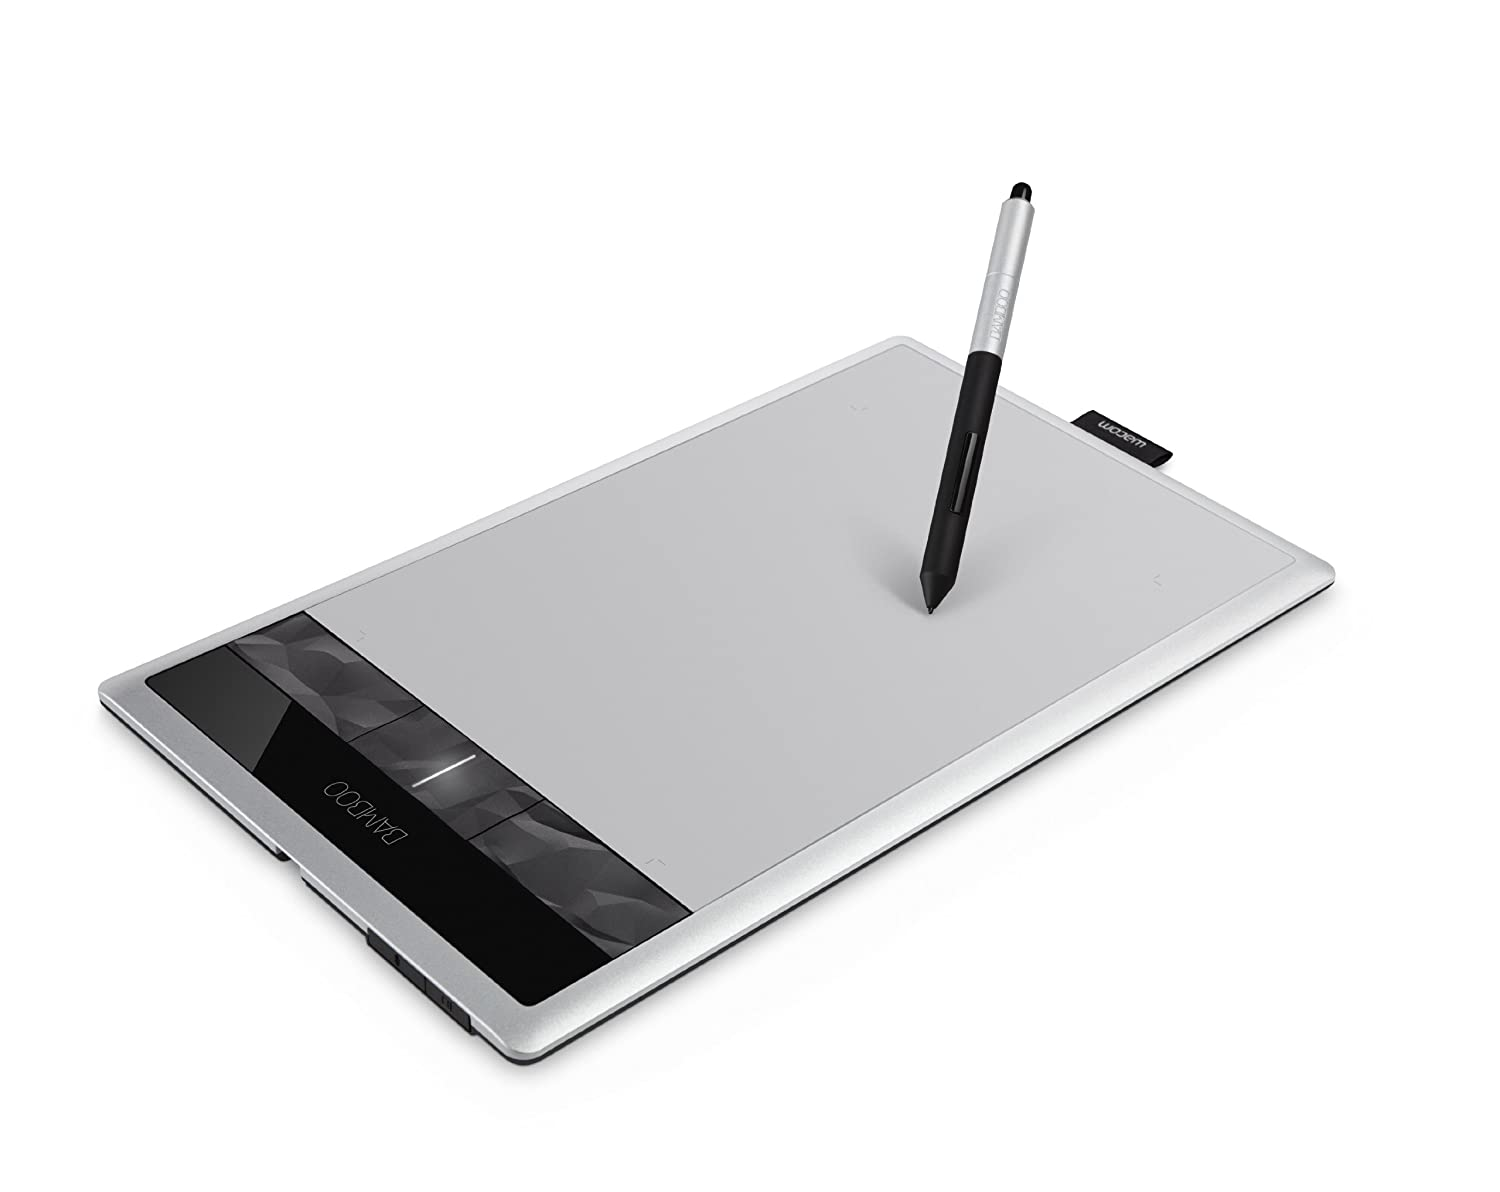 71ufng%2Bgy L. SL1500  Wacom Bamboo vs Intuos 5 Digital Sketch Pad   Part 1